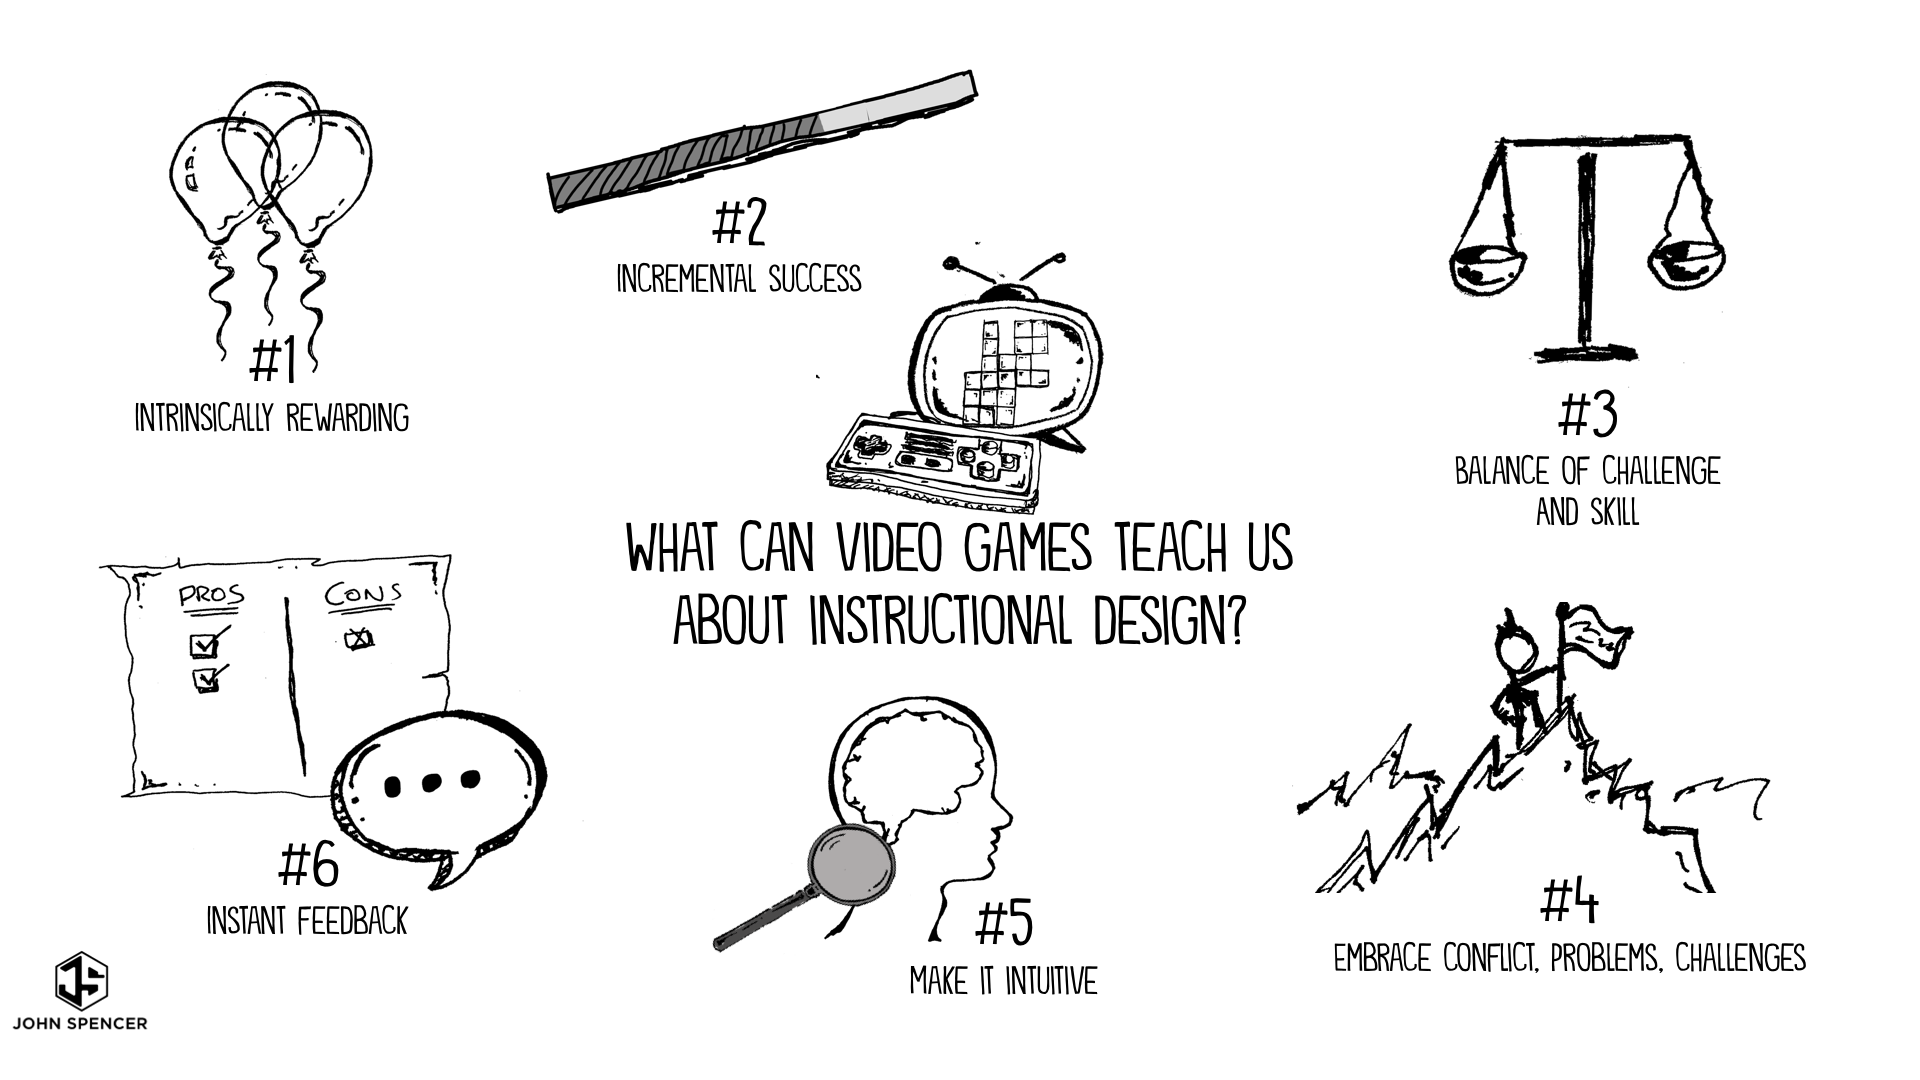 What Can Video Games Teach Us About Instructional Design By John Spencer The Synapse Medium